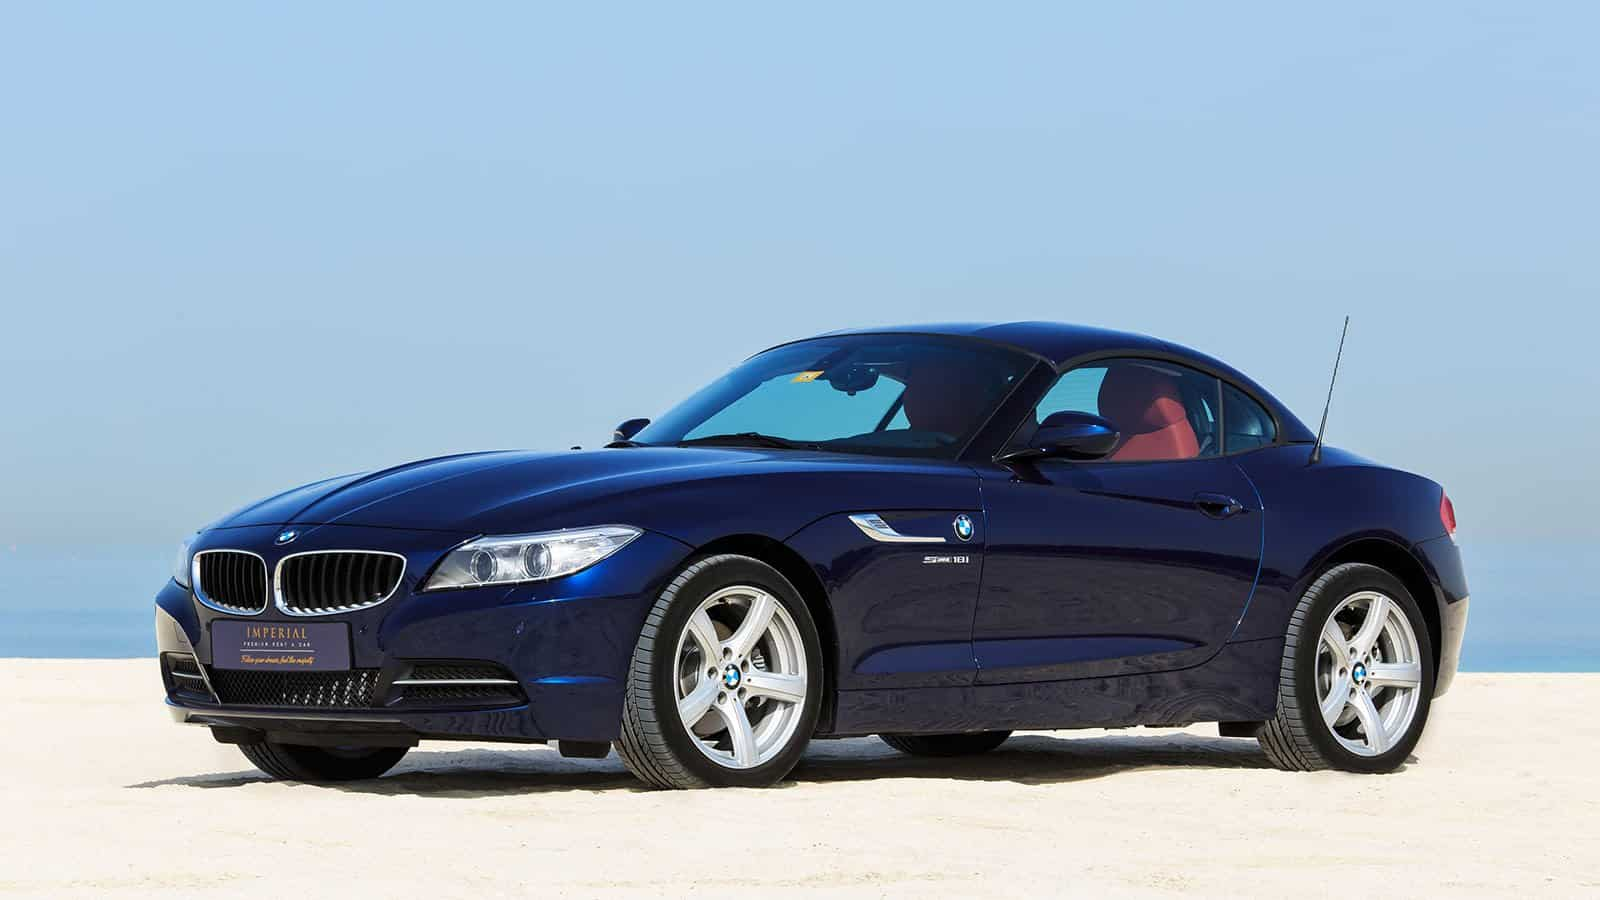 bmw z4 for rent dubai imperial premium rent a car. Black Bedroom Furniture Sets. Home Design Ideas